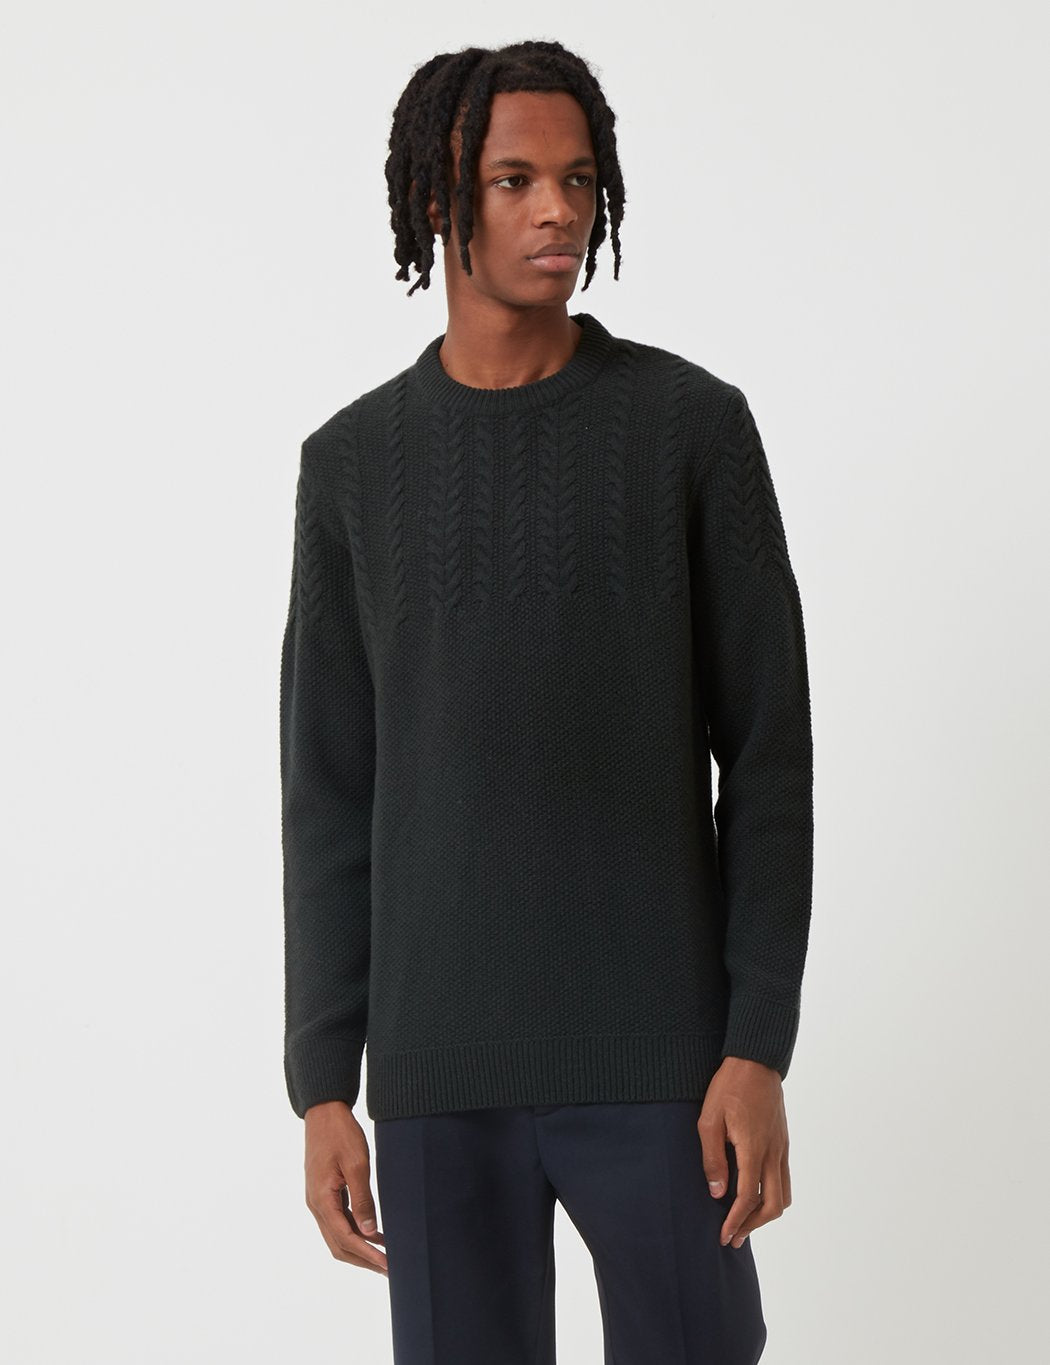 Barbour Crastill Cable Knit Sweatshirt - Seaweed Green